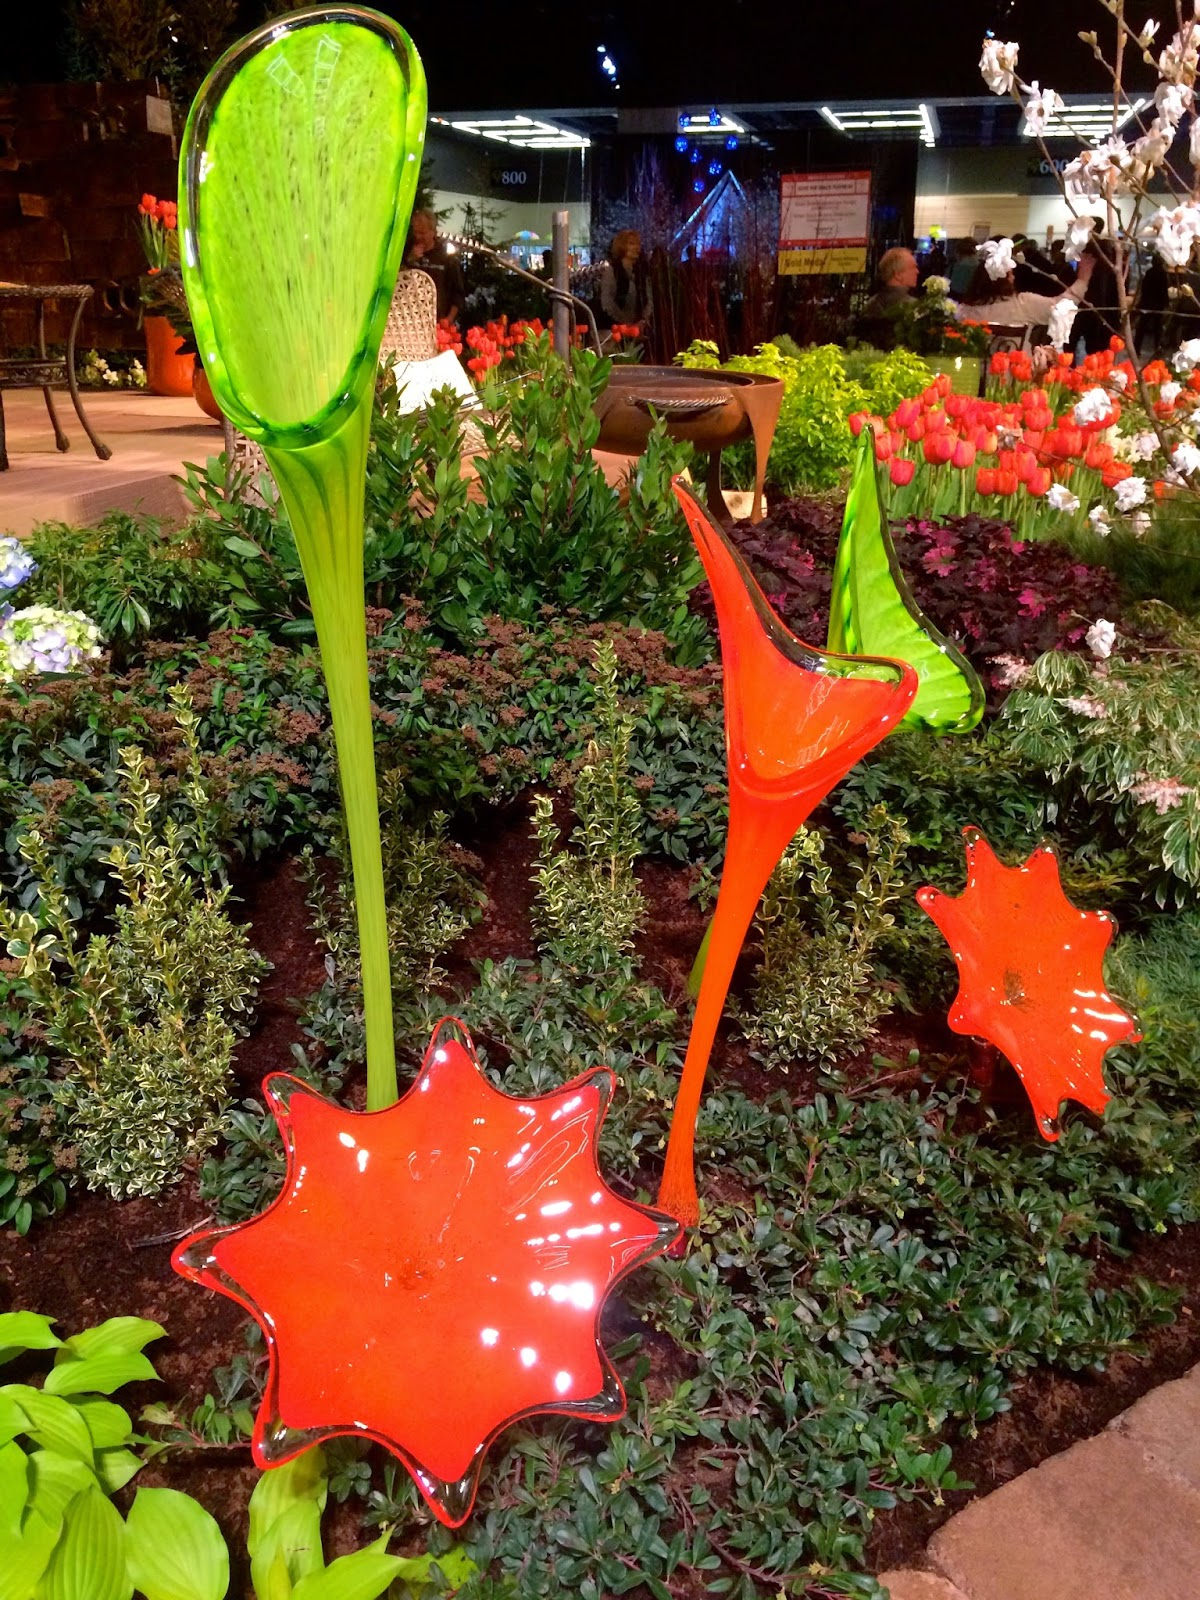 Growing Steady: The 2015 Northwest Flower & Garden Show